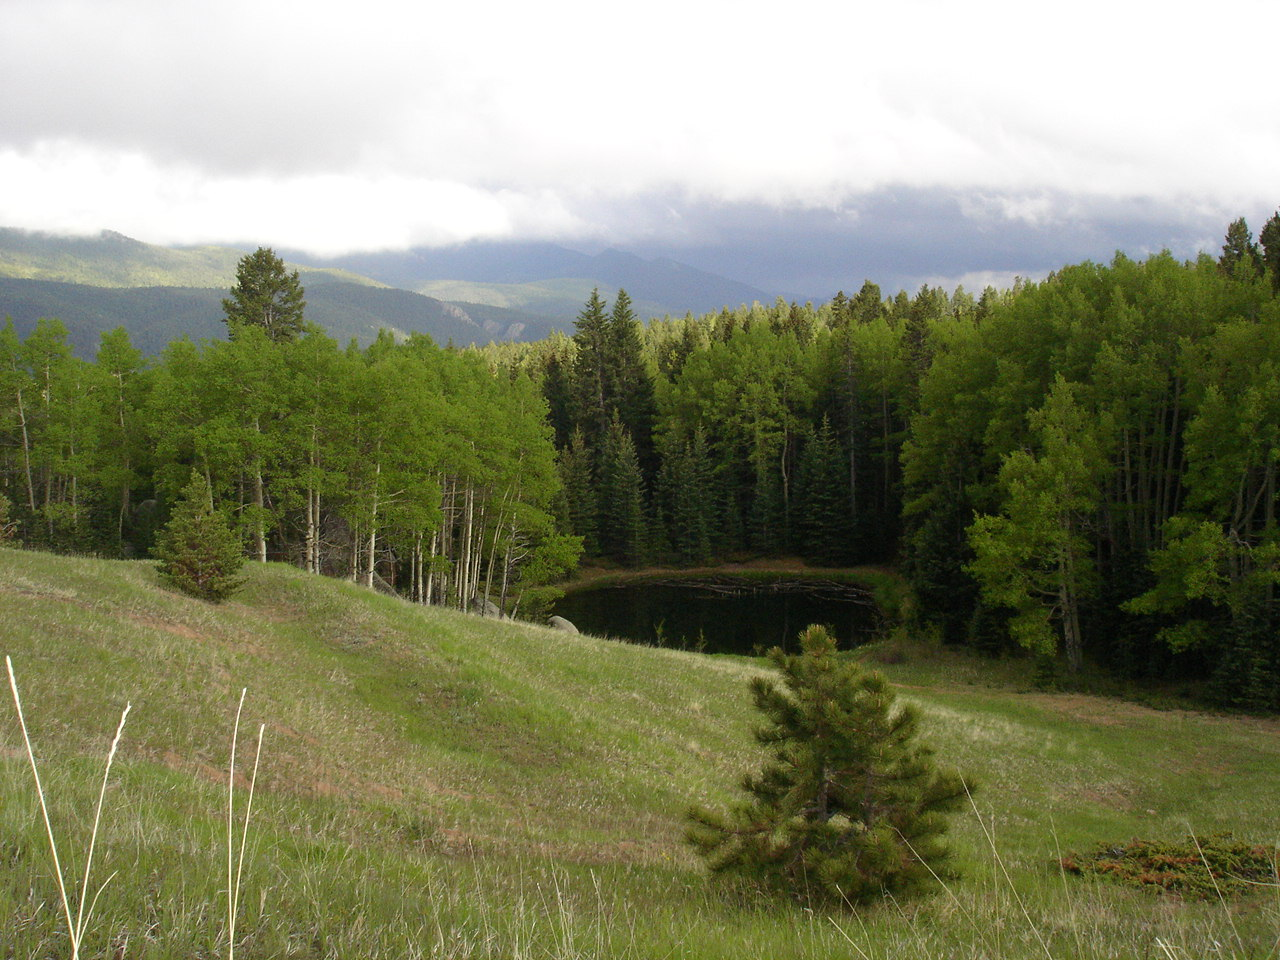 Click image for larger version  Name:Peakview pond.jpg Views:80 Size:320.3 KB ID:84430